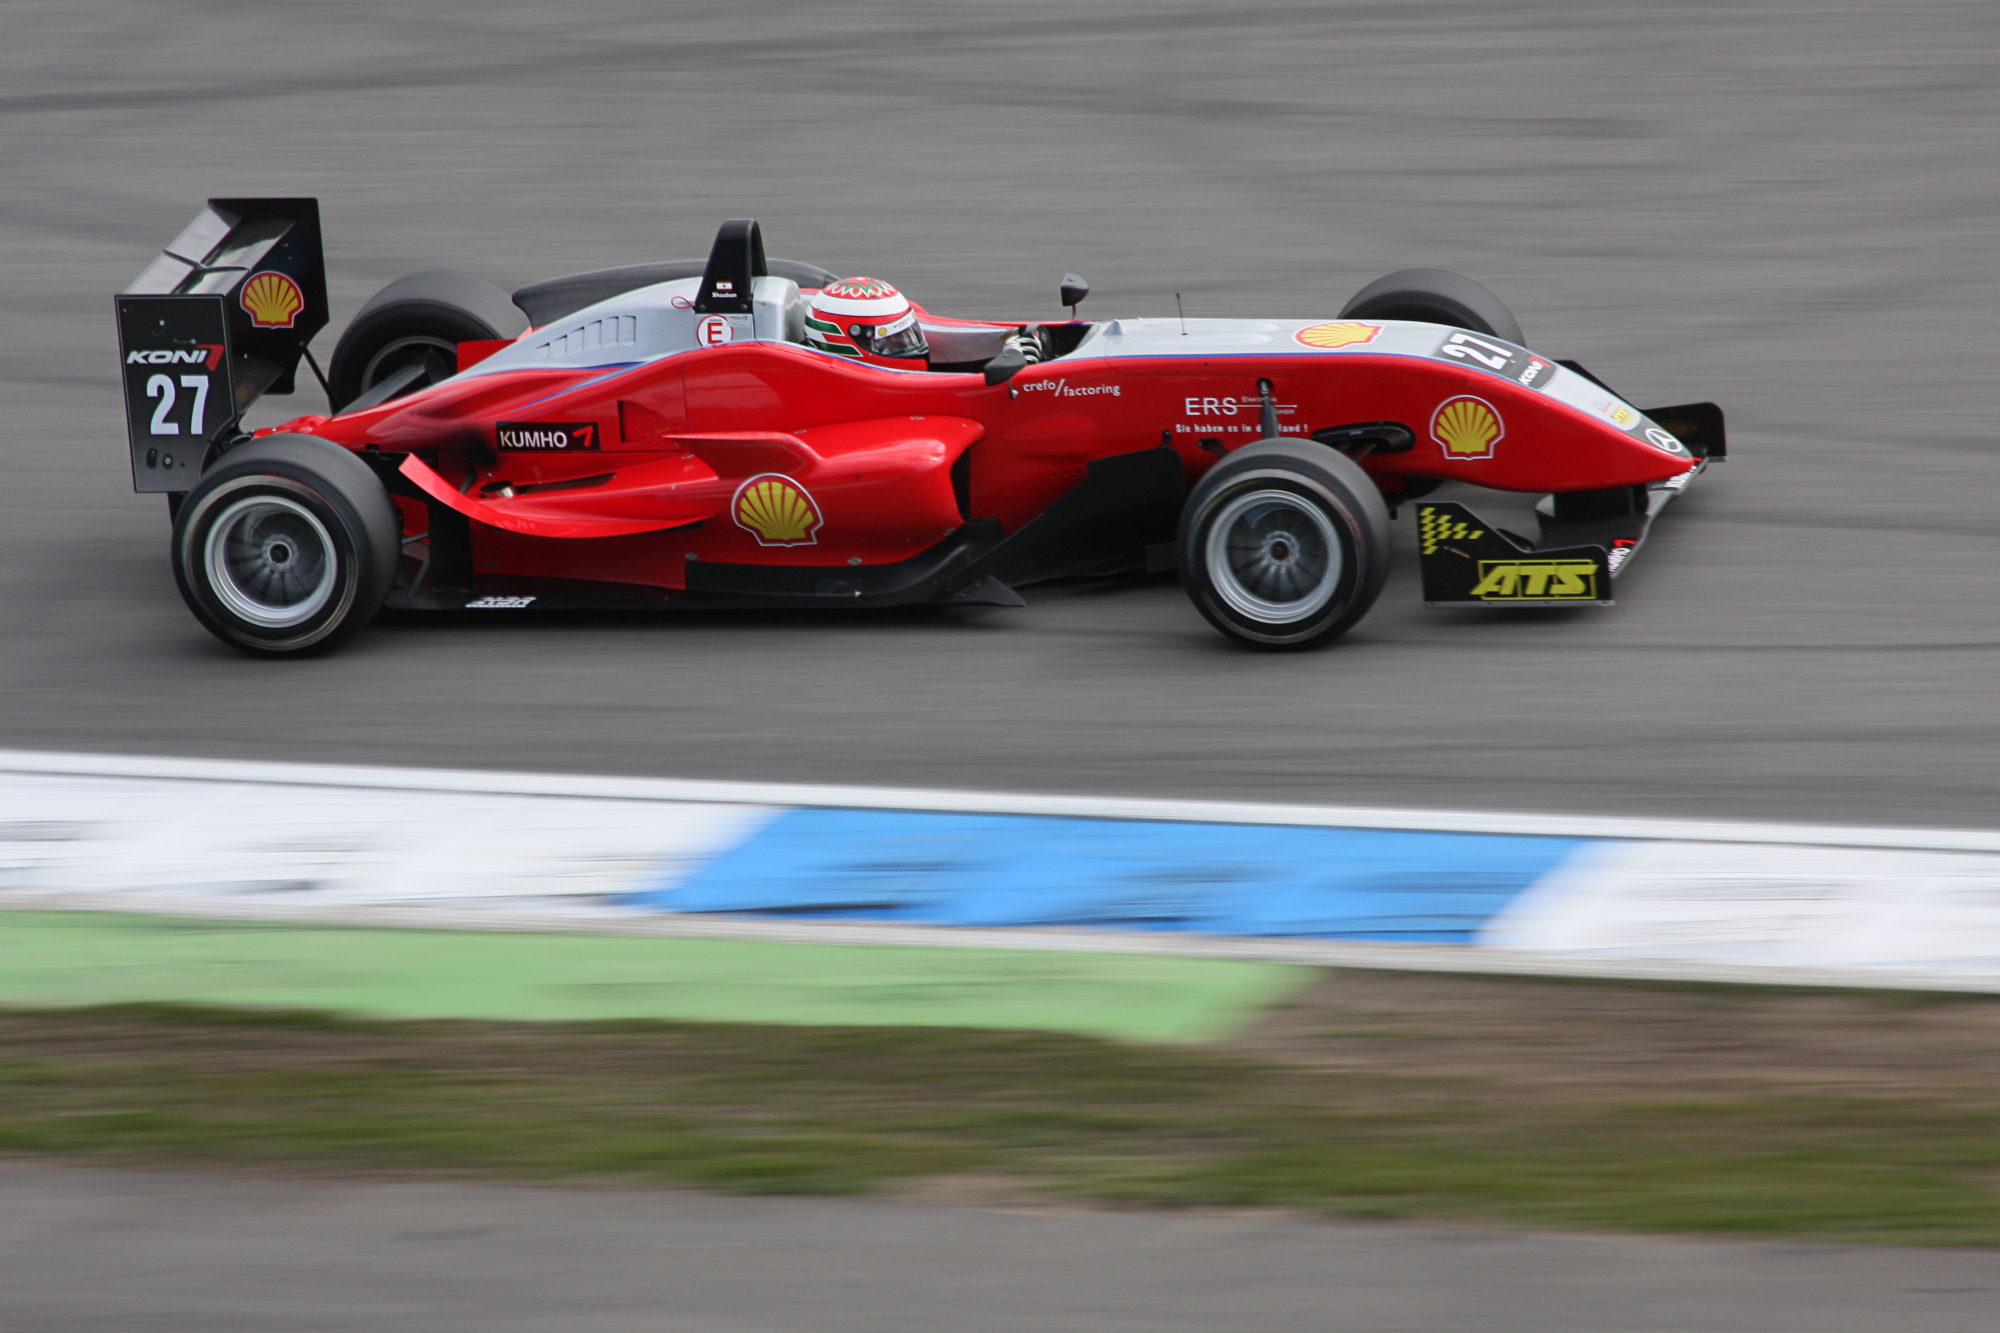 File:Formel3 racing car amk.jpg  Wikipedia